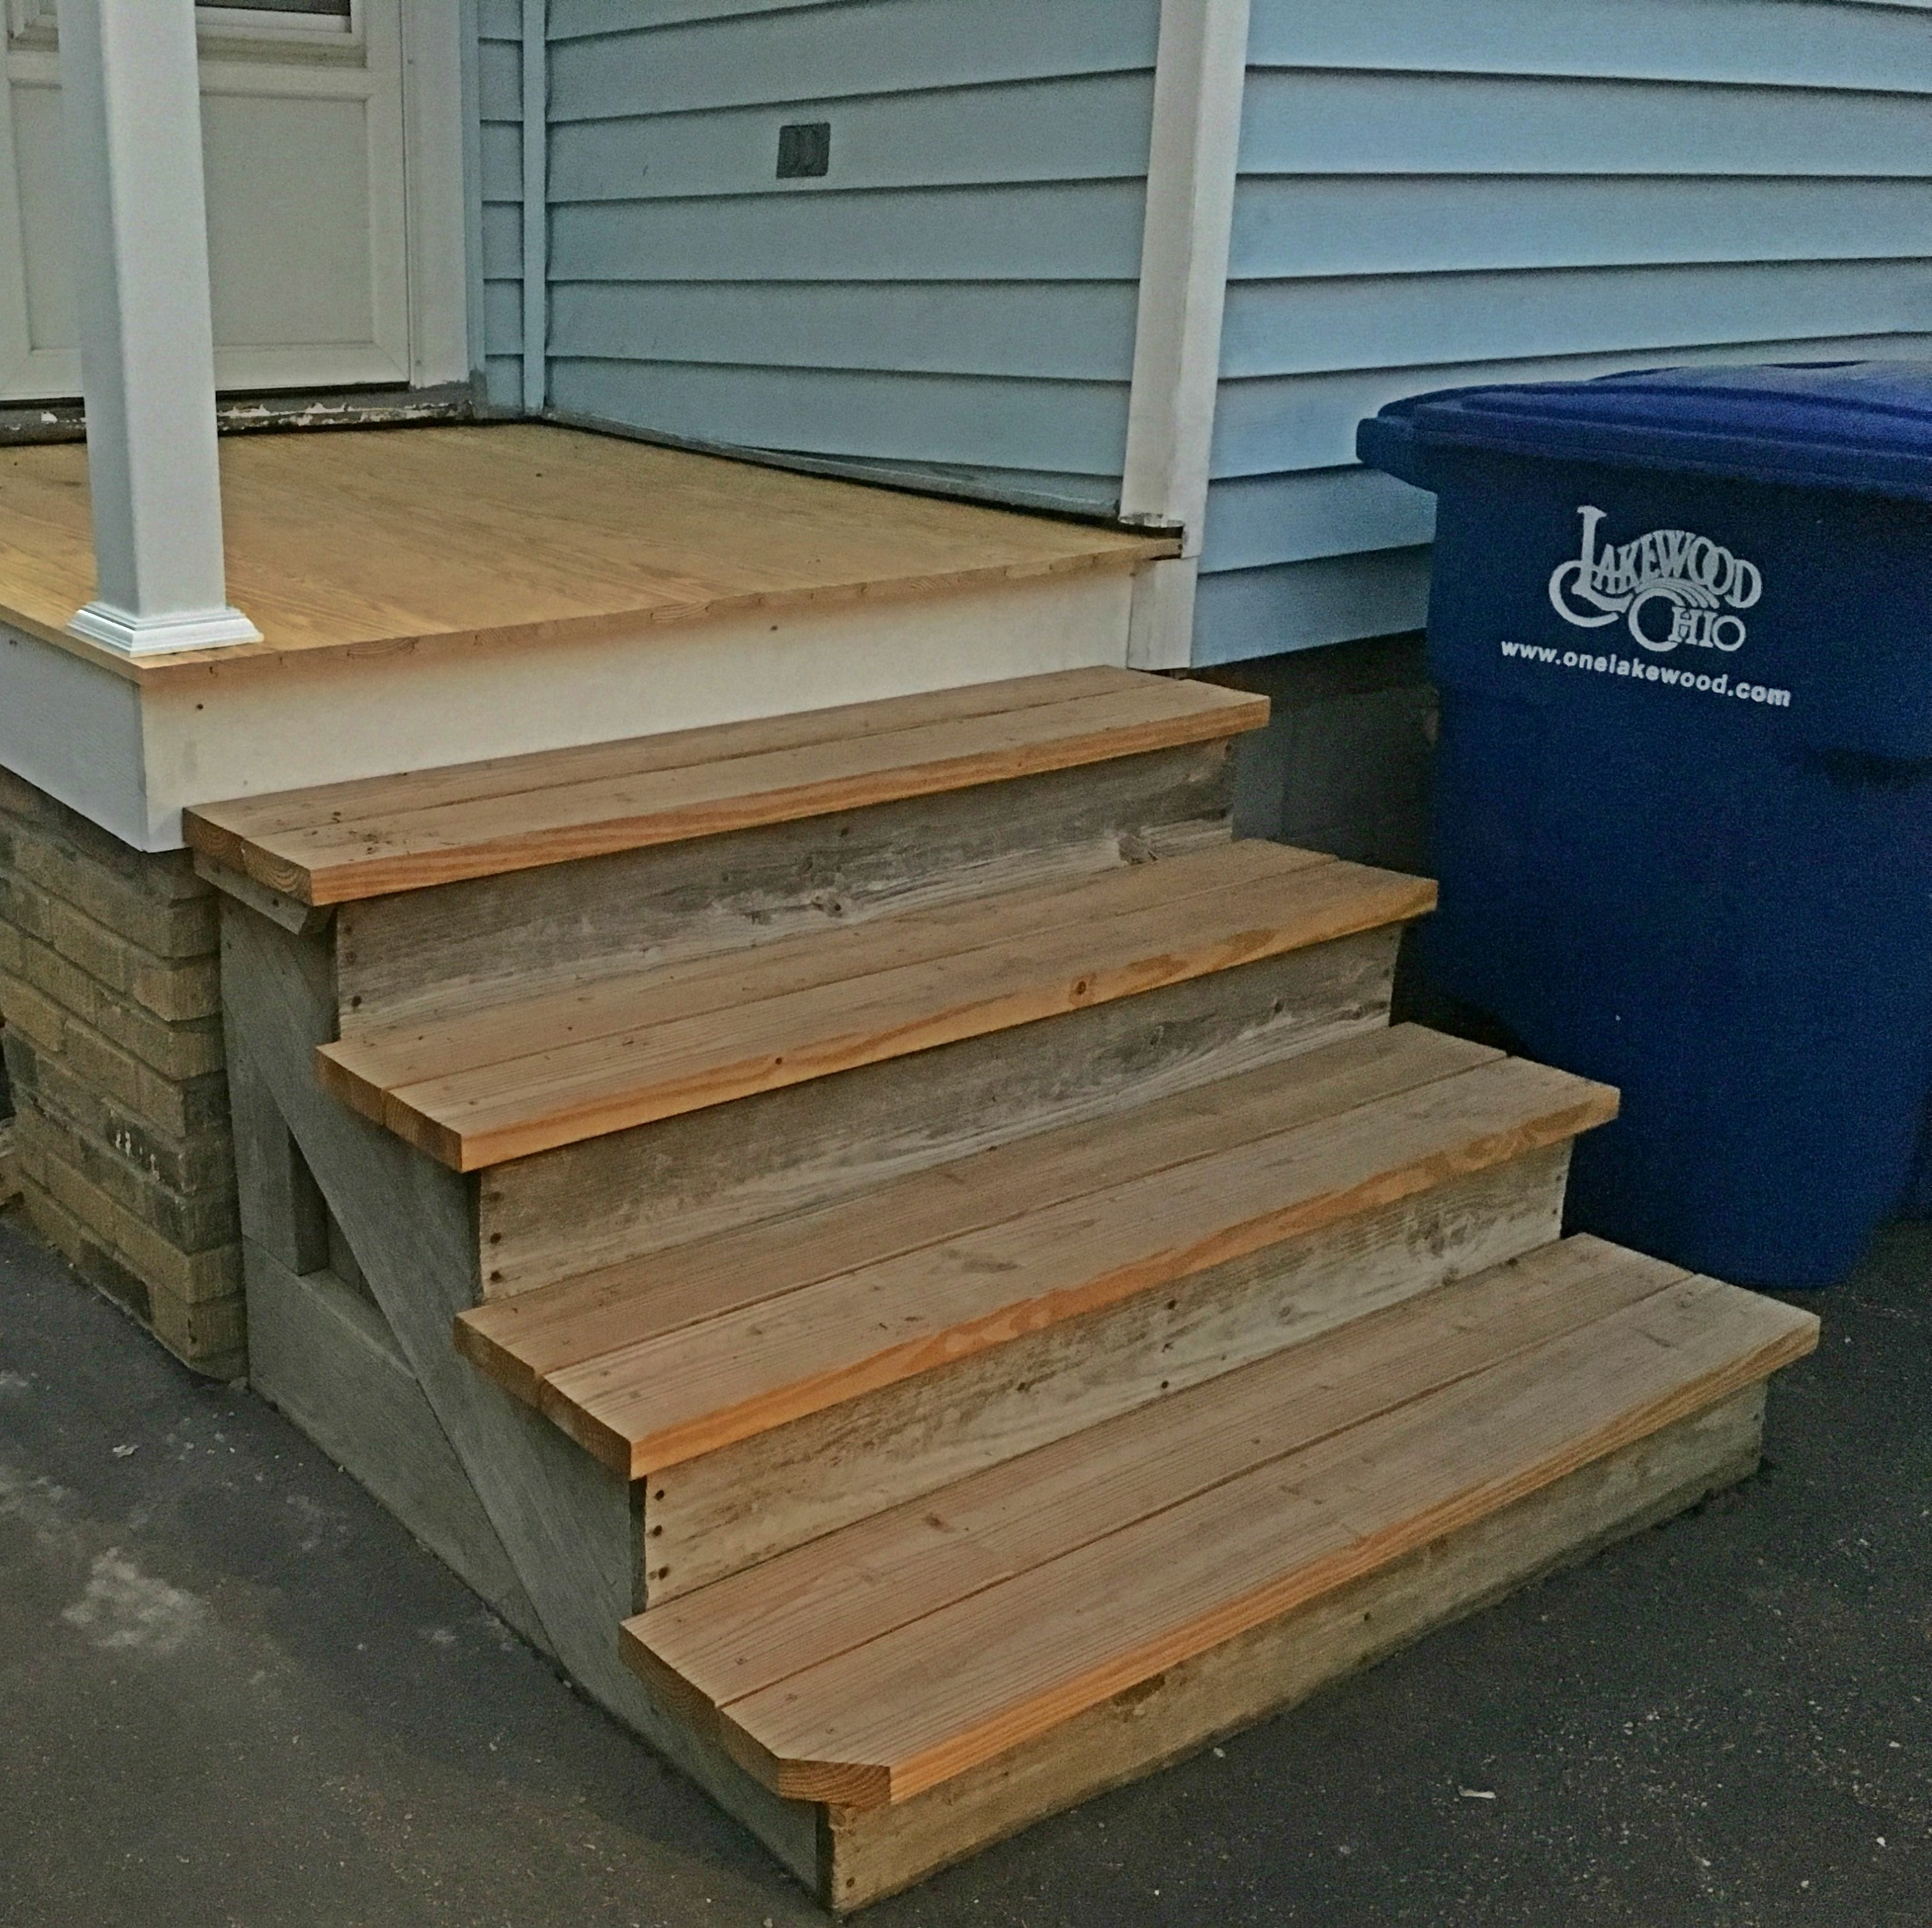 Wooden Steps Lakewoodalive To Host Knowing Your Home Workshops